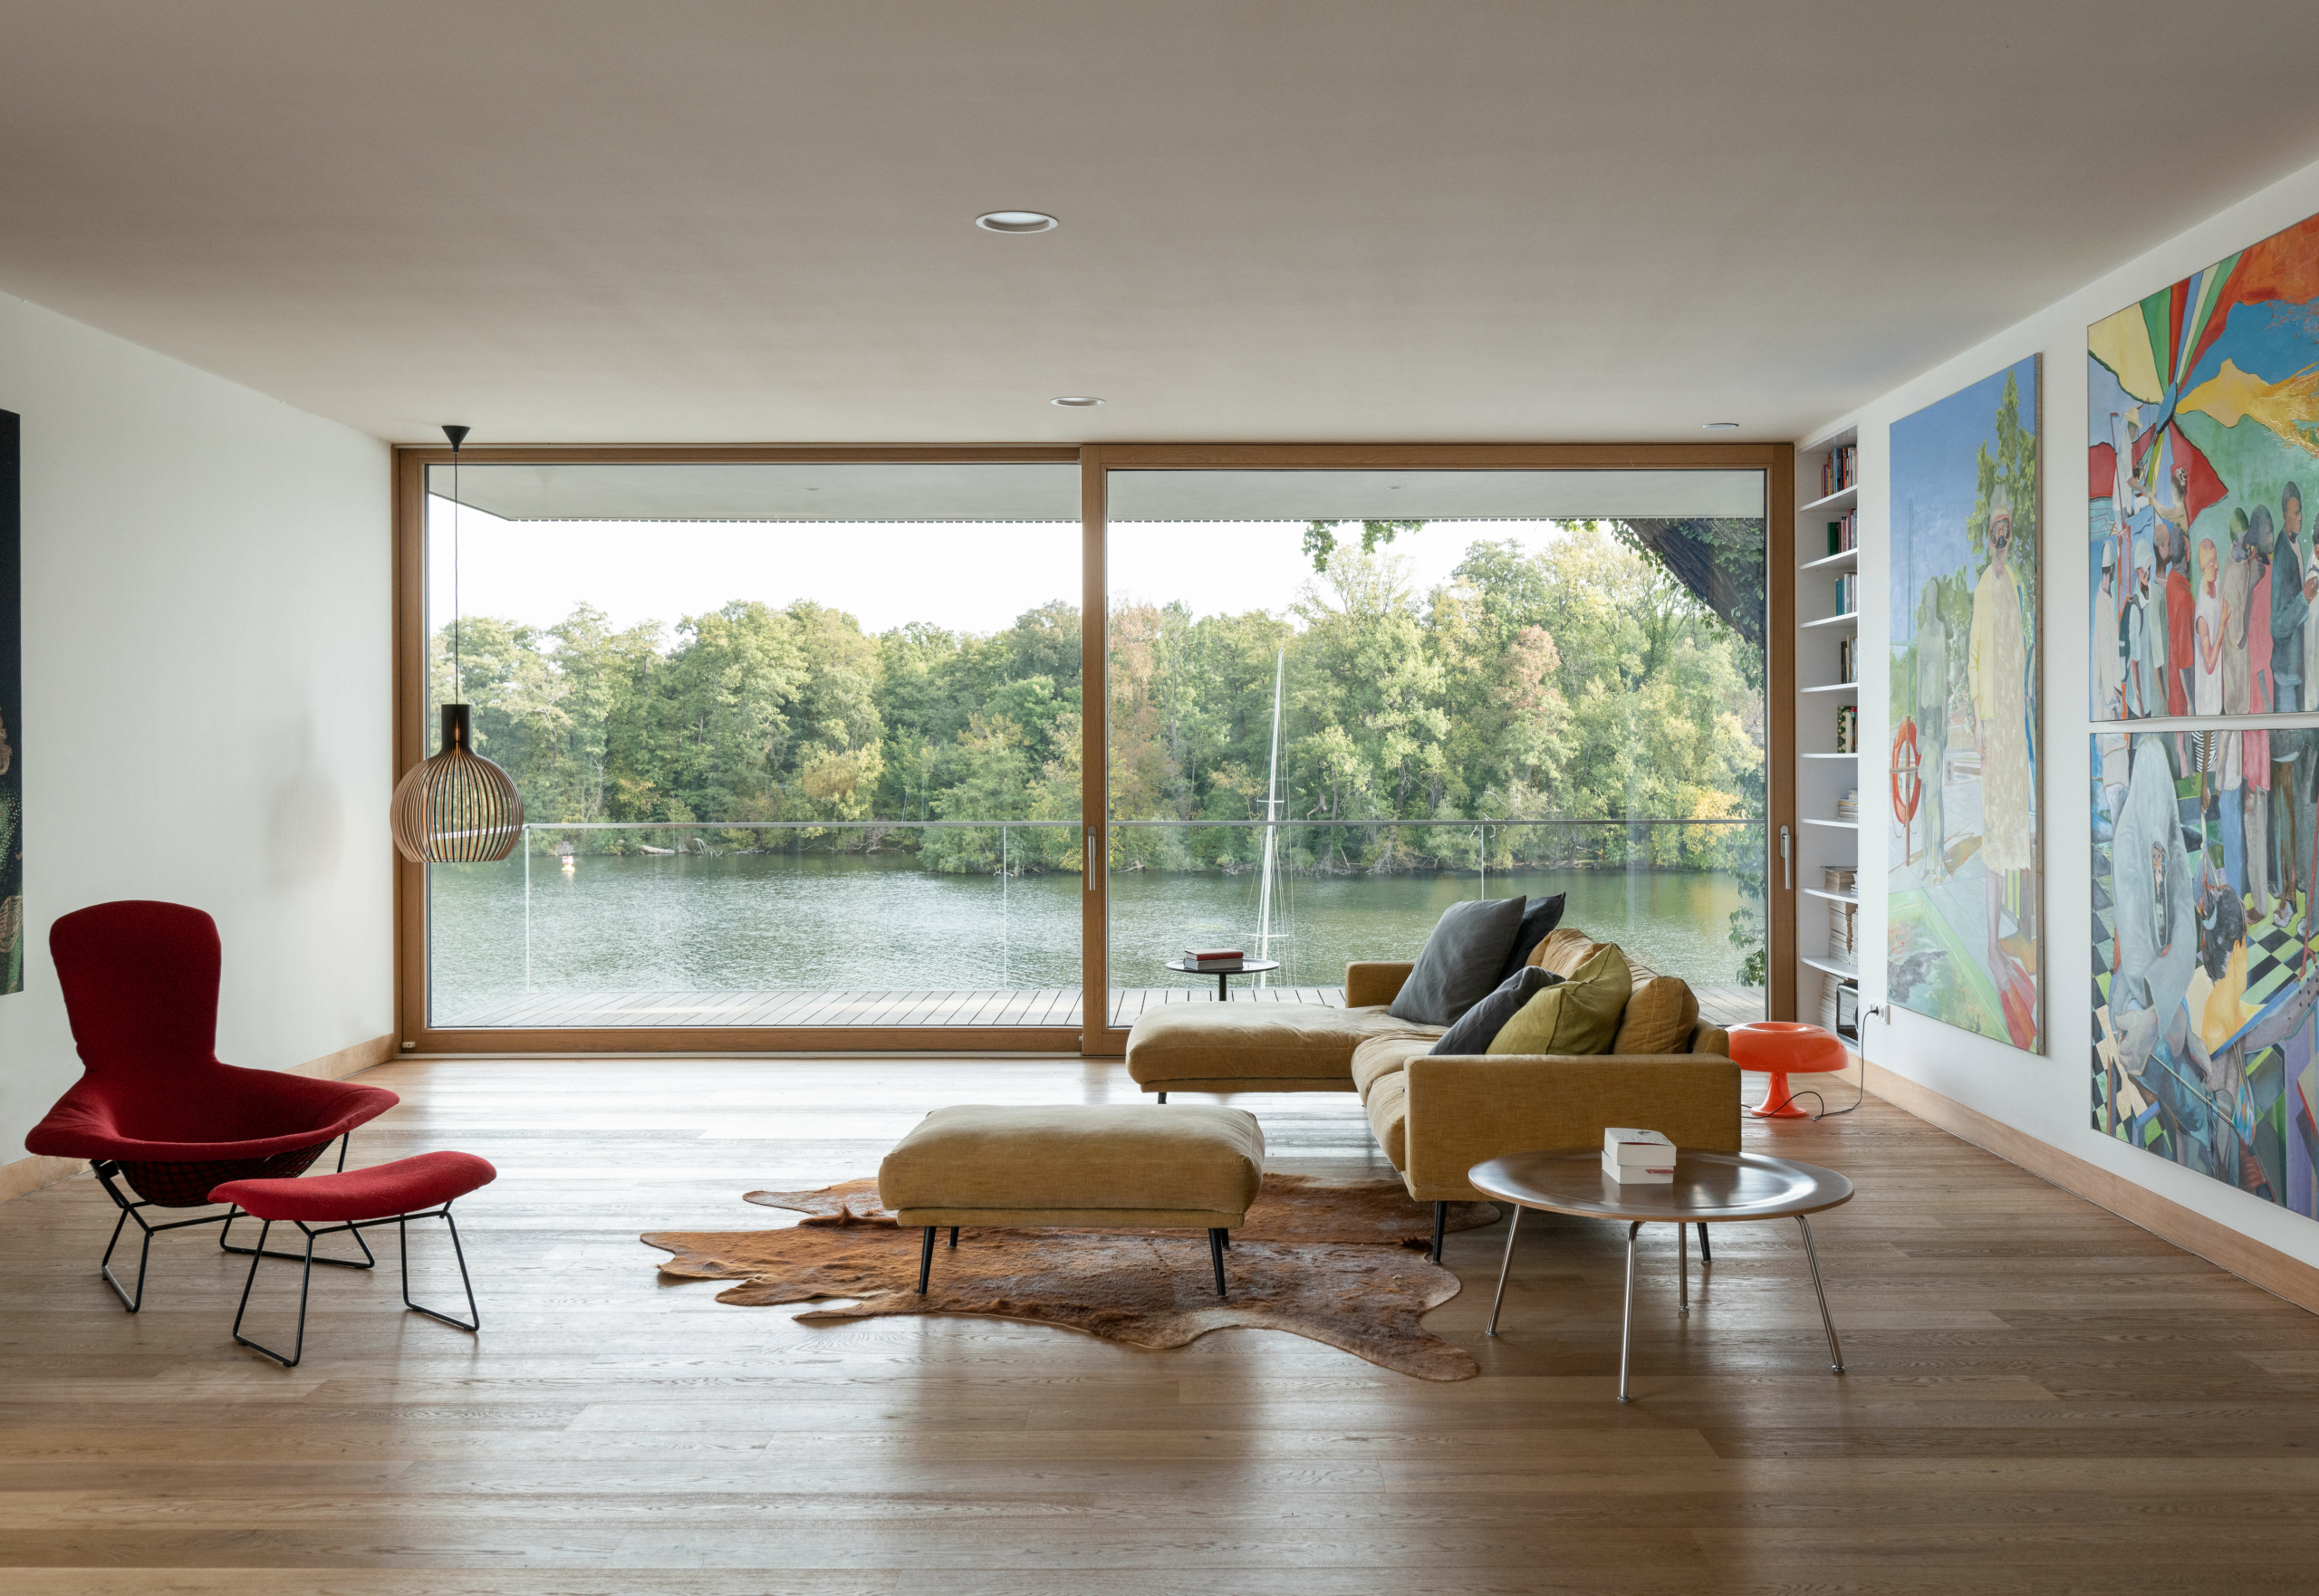 Living room of house by the lake